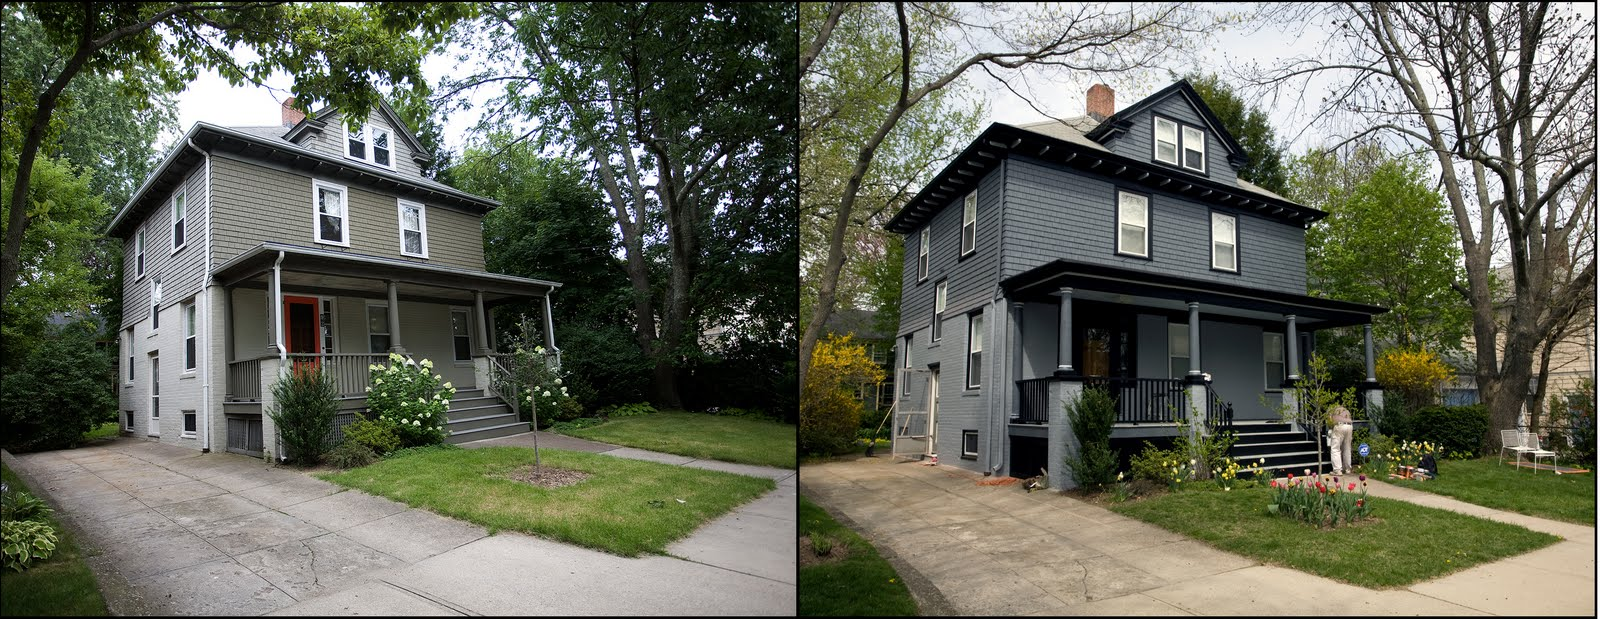 Before and after home renovations for Exterior home renovations